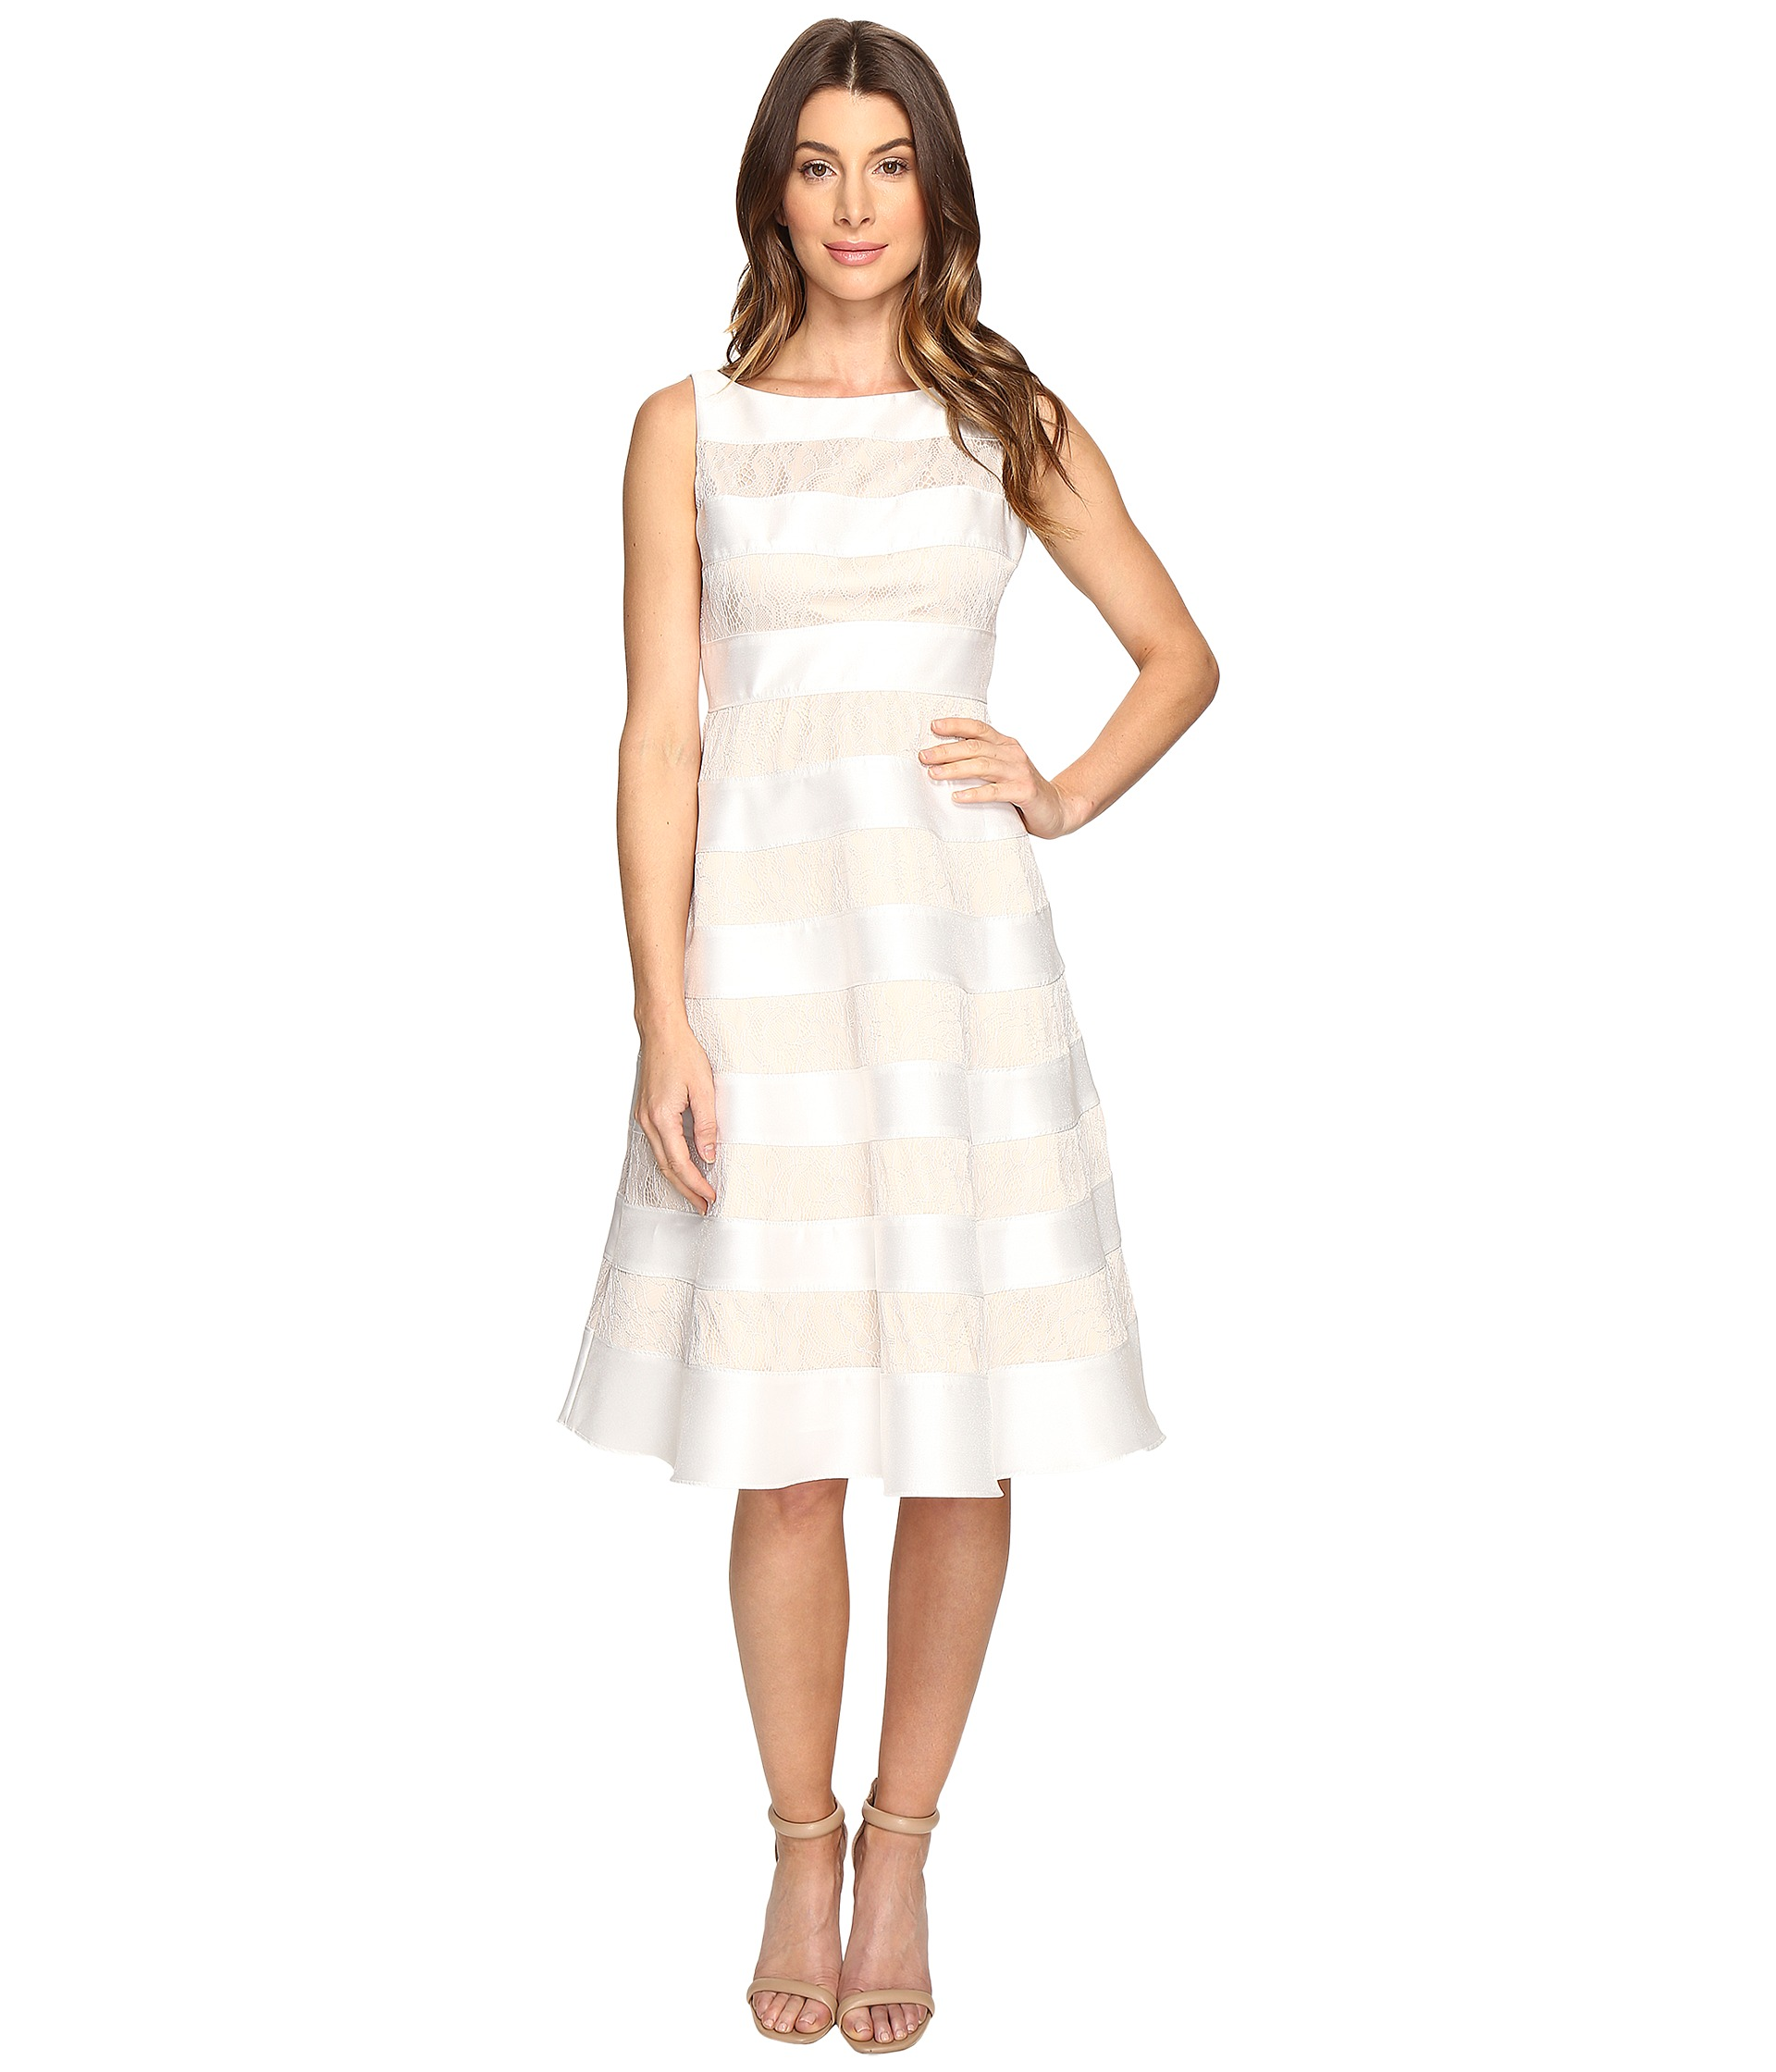 Cocktail Dresses | Shipped Free at Zappos